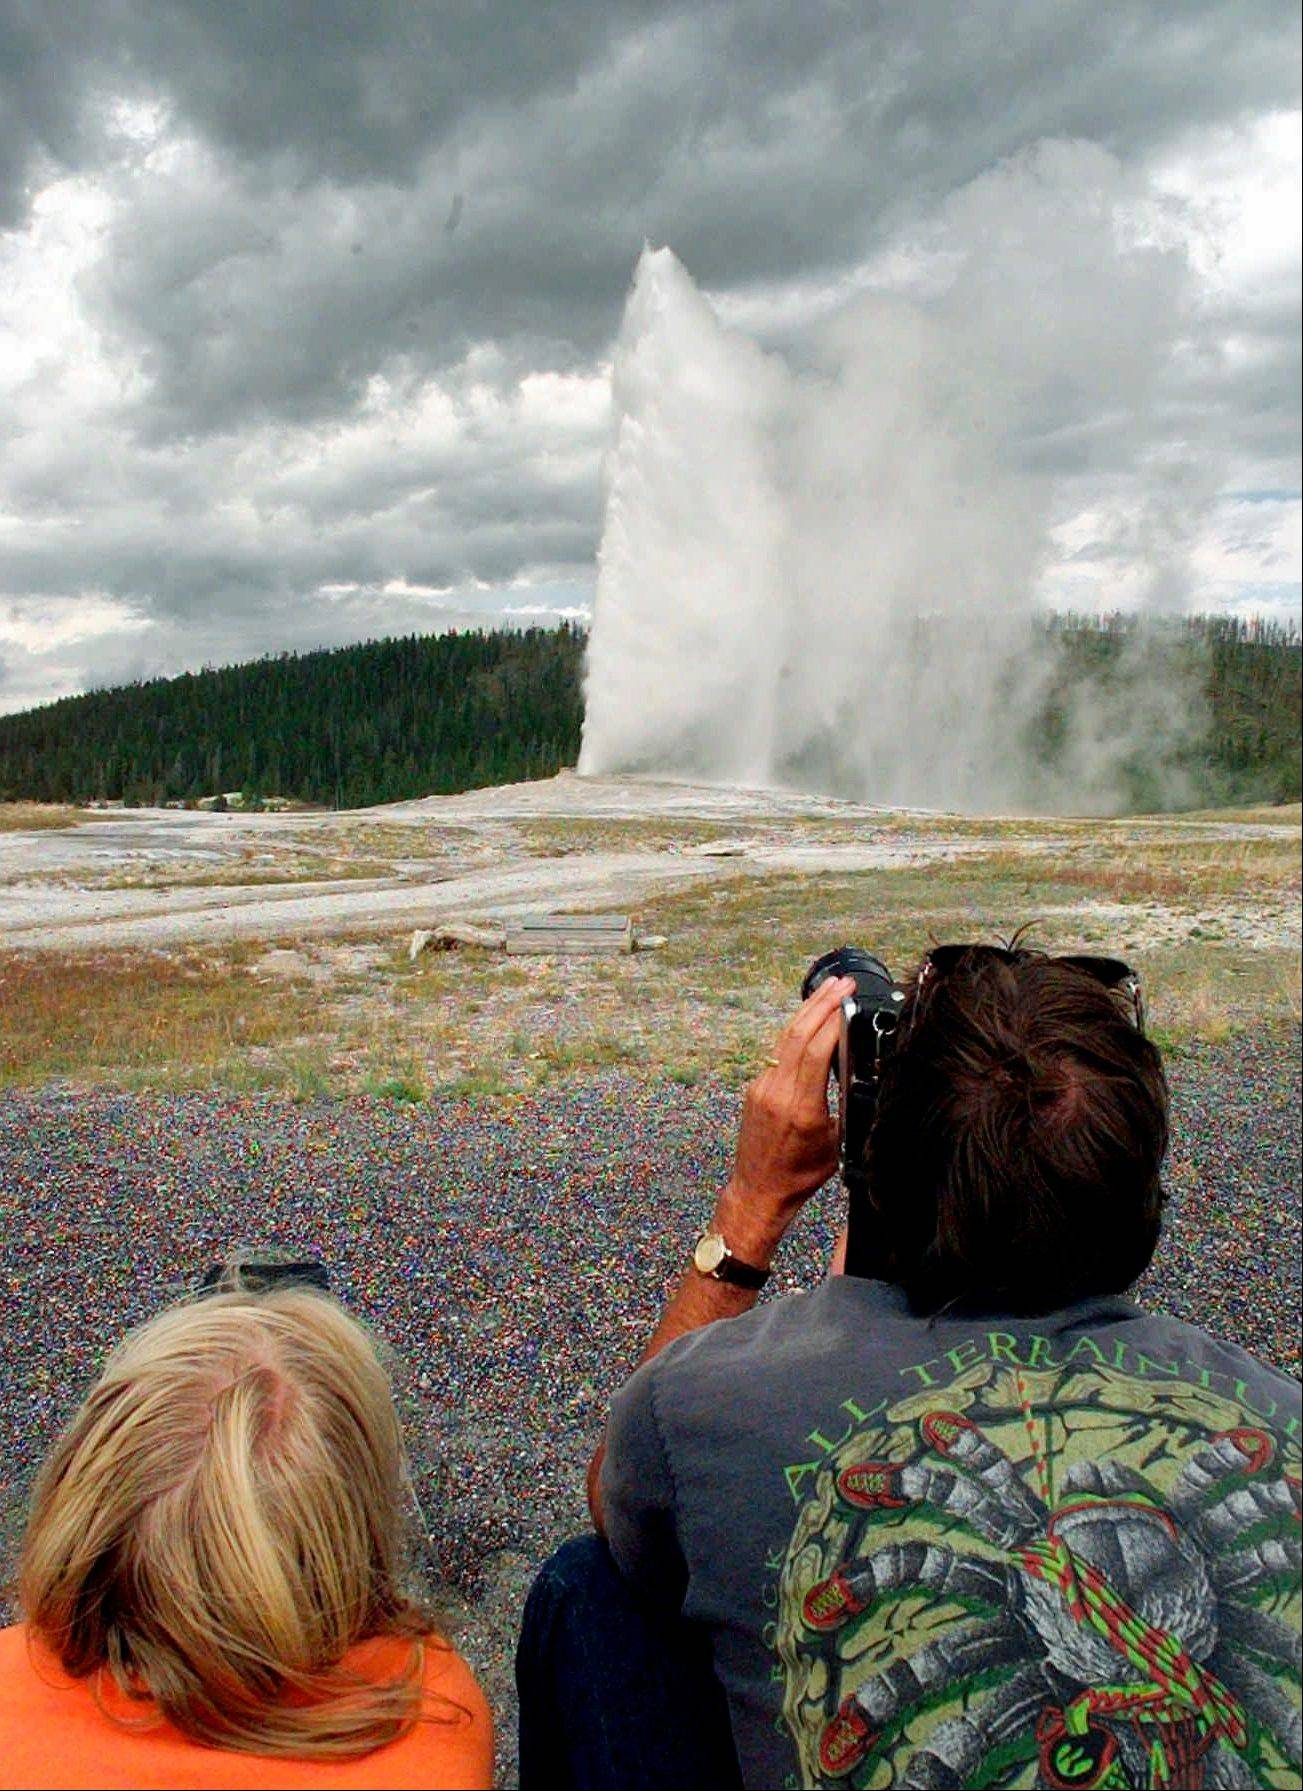 Visitors photograph the Old Faithful geyser at Yellowstone National Park in Wyoming. Hundreds of small earthquakes at Yellowstone National Park in recent weeks have been an unsettling reminder for some people that underneath the park's famous geysers and majestic scenery lurks one of the world's biggest volcanoes.